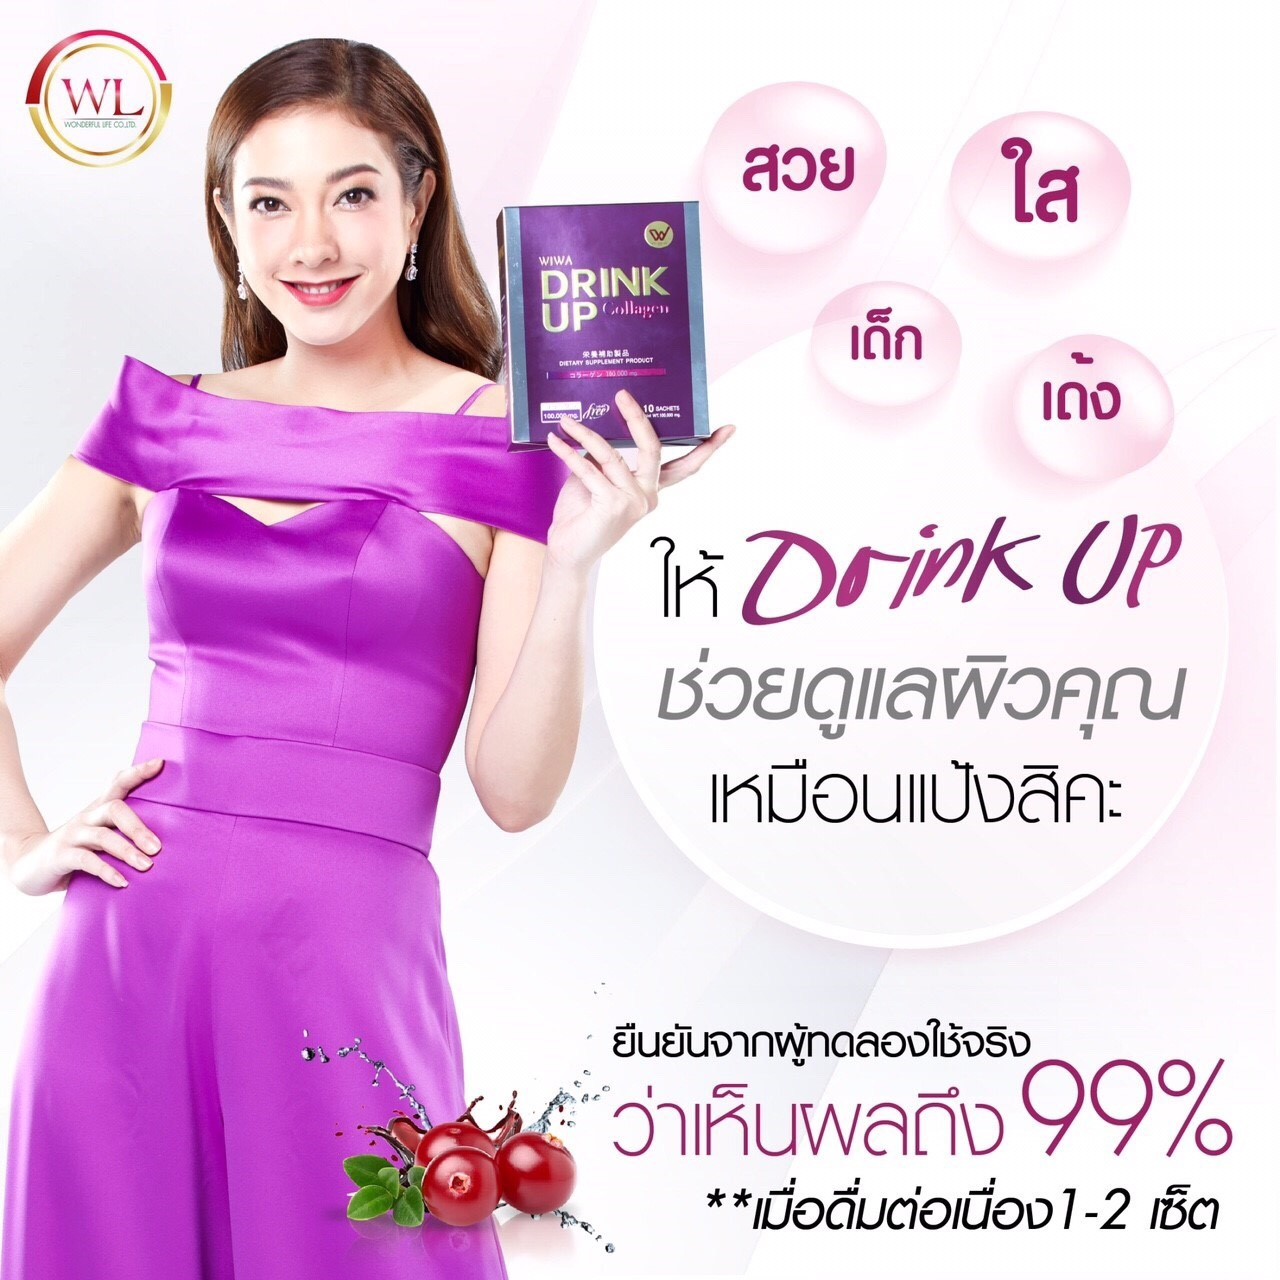 wiwa drink up collagen